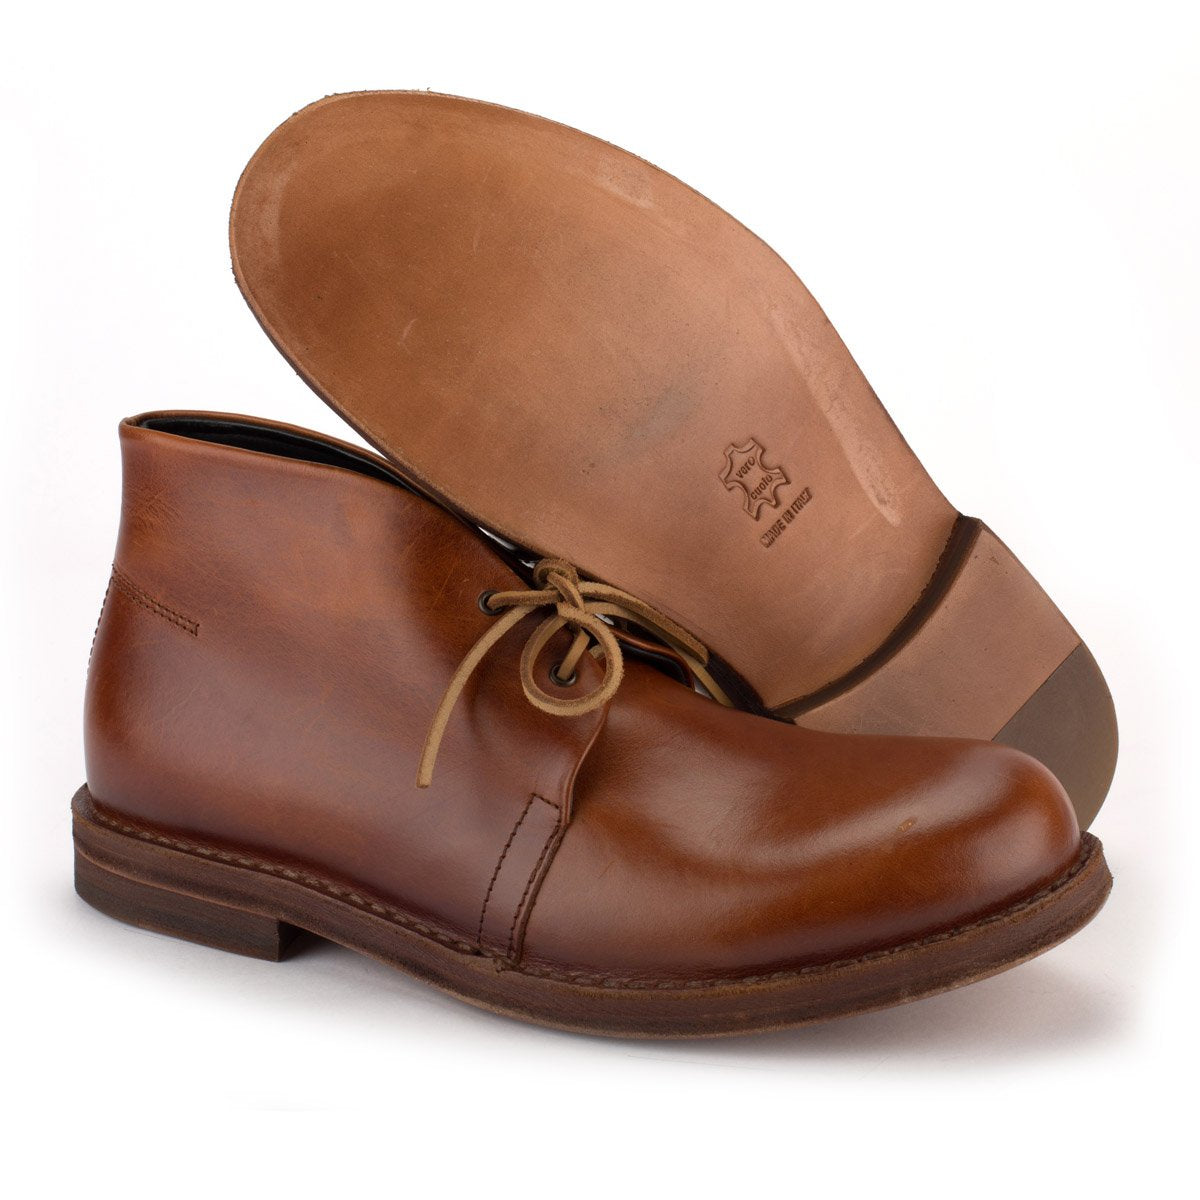 MR JOHN DESERT BOOTS – Tan